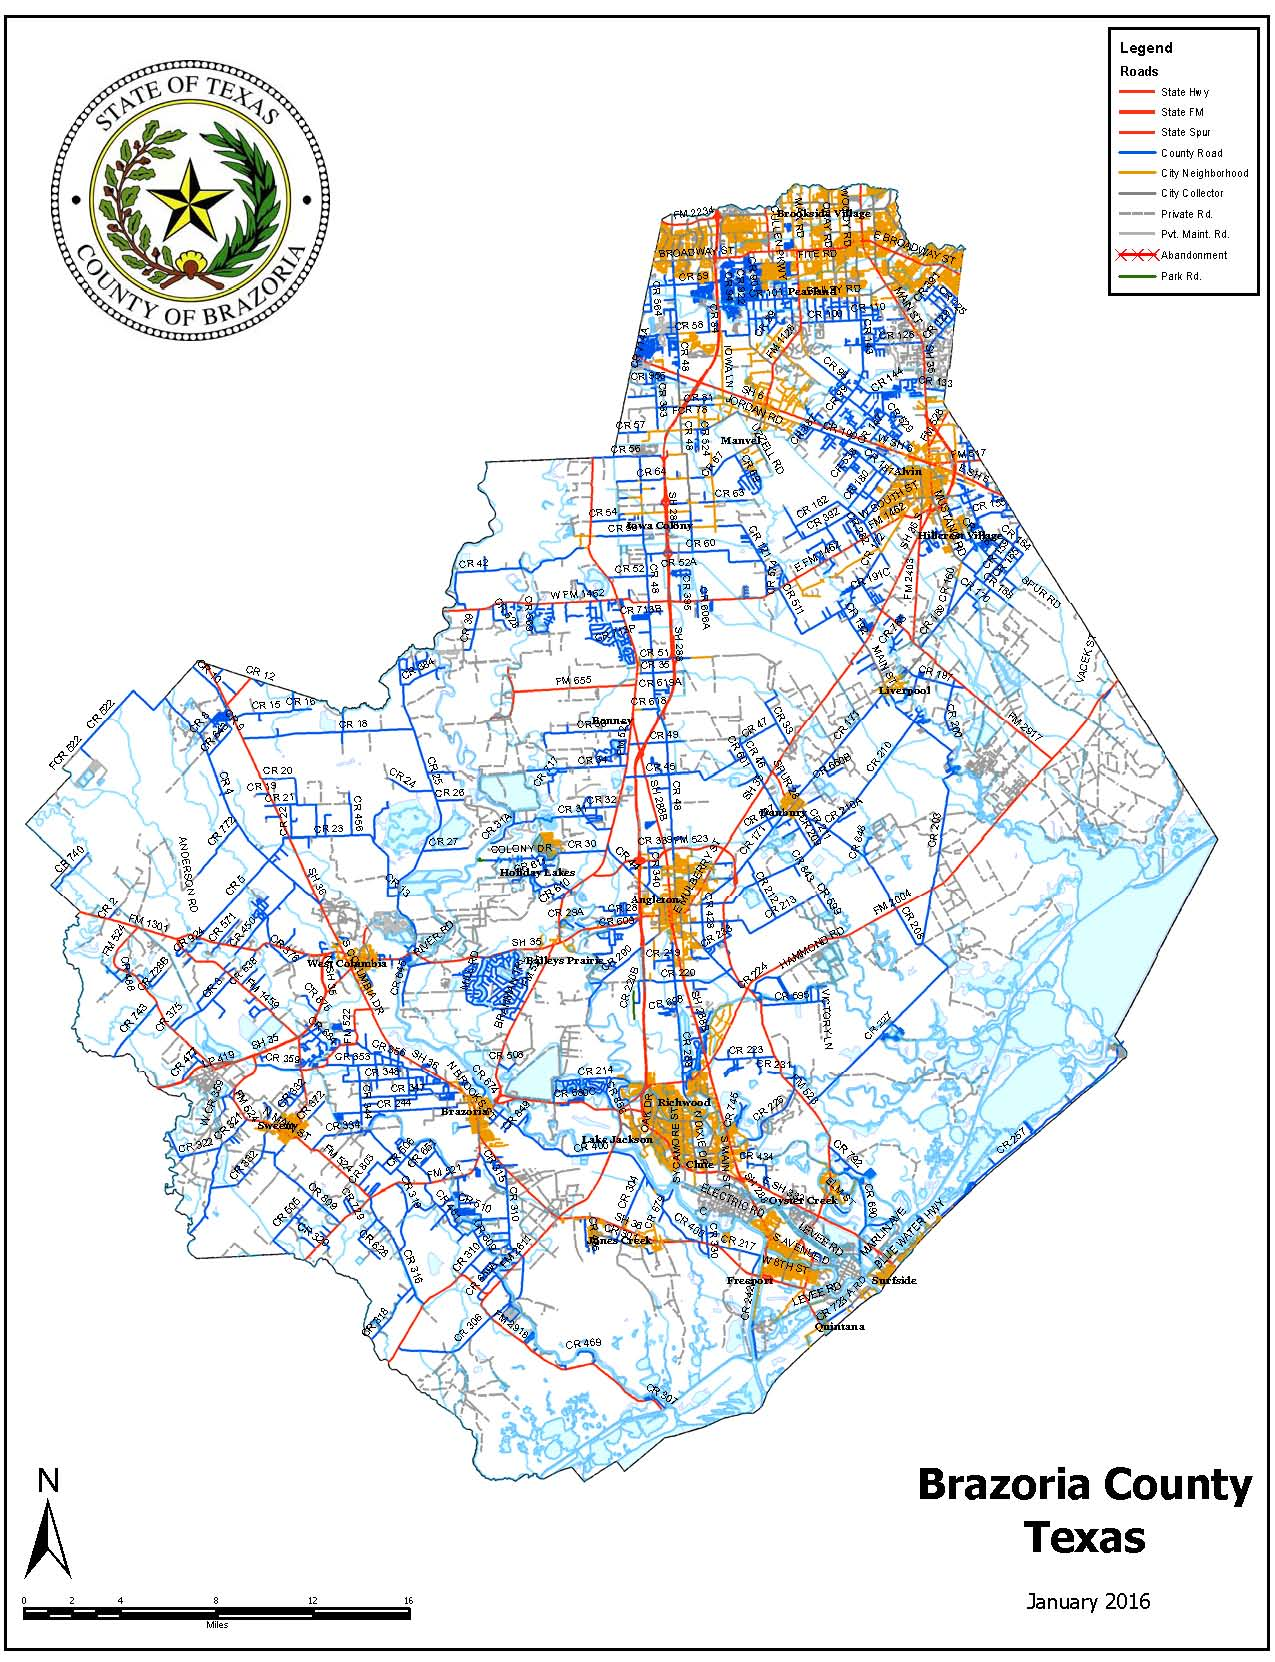 County Map | zoria County, TX on map of romayor tx, map of fort bend county tx, map of raymondville tx, map of cherokee tx, map of rio grande city tx, map of cy fair tx, map of tiki island tx, map of calallen tx, map of n richland hills tx, map of camp wood tx, map of bee cave tx, map of miami tx, map of george west tx, map of beach city tx, map of crane tx, map of cut and shoot tx, map of port of houston tx, map of forest hill tx, map of baytown tx, map of spartanburg tx,